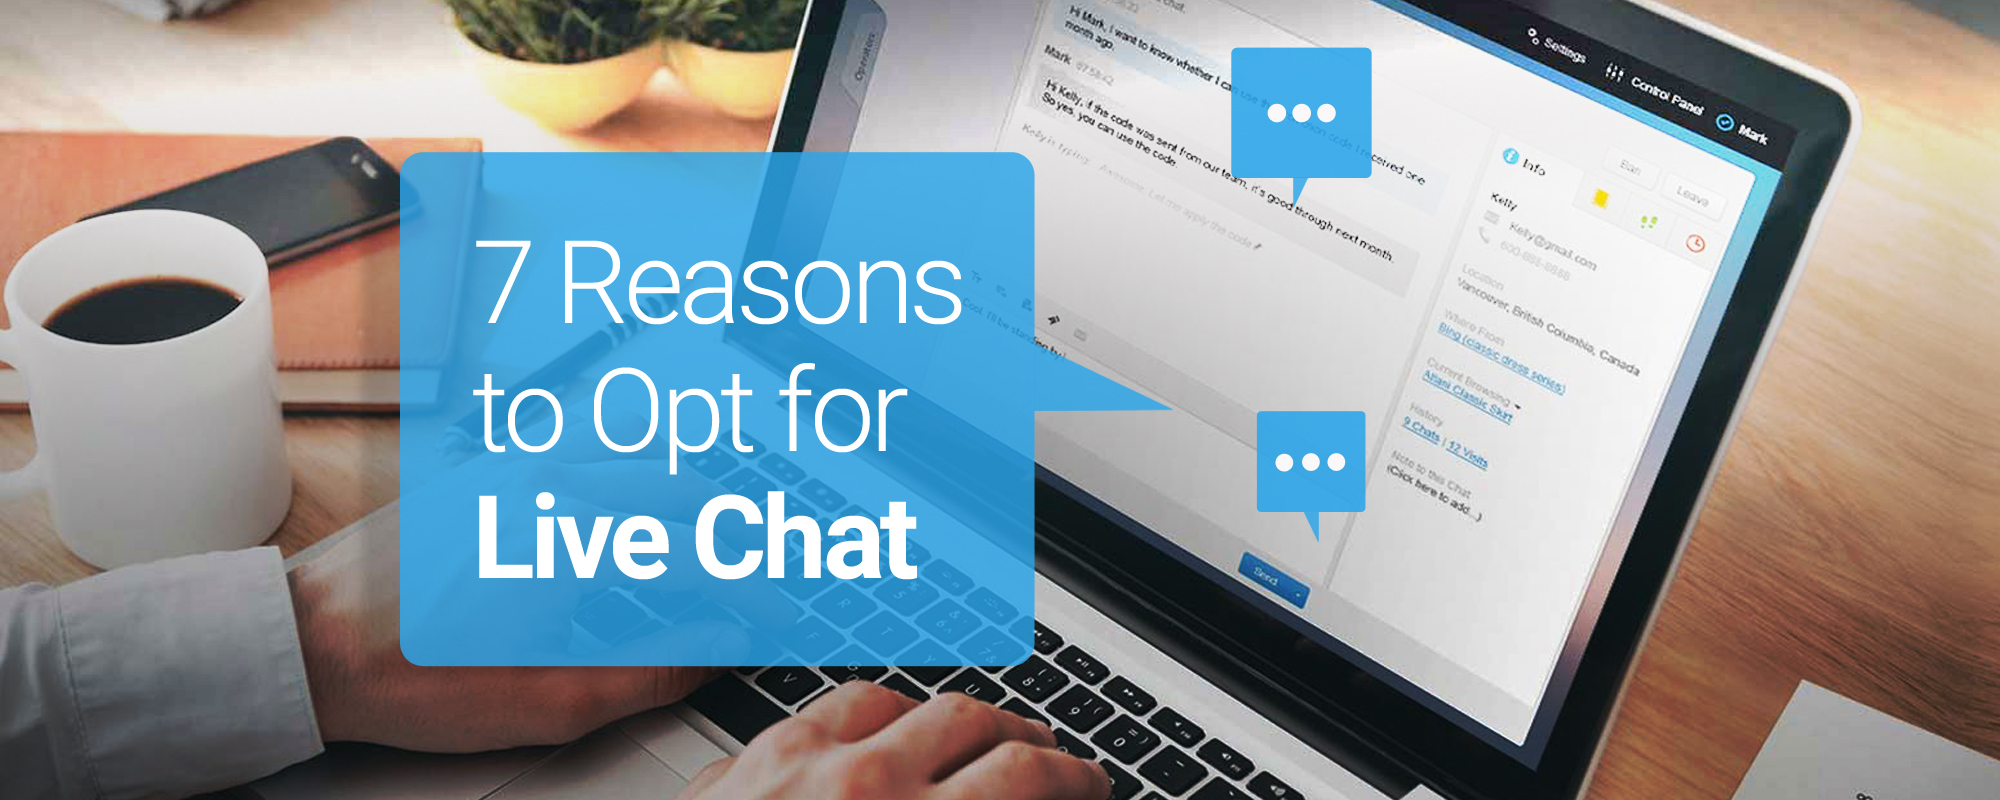 7 Reasons Why Live Chats Are Crucial For a Business & Its Consumers